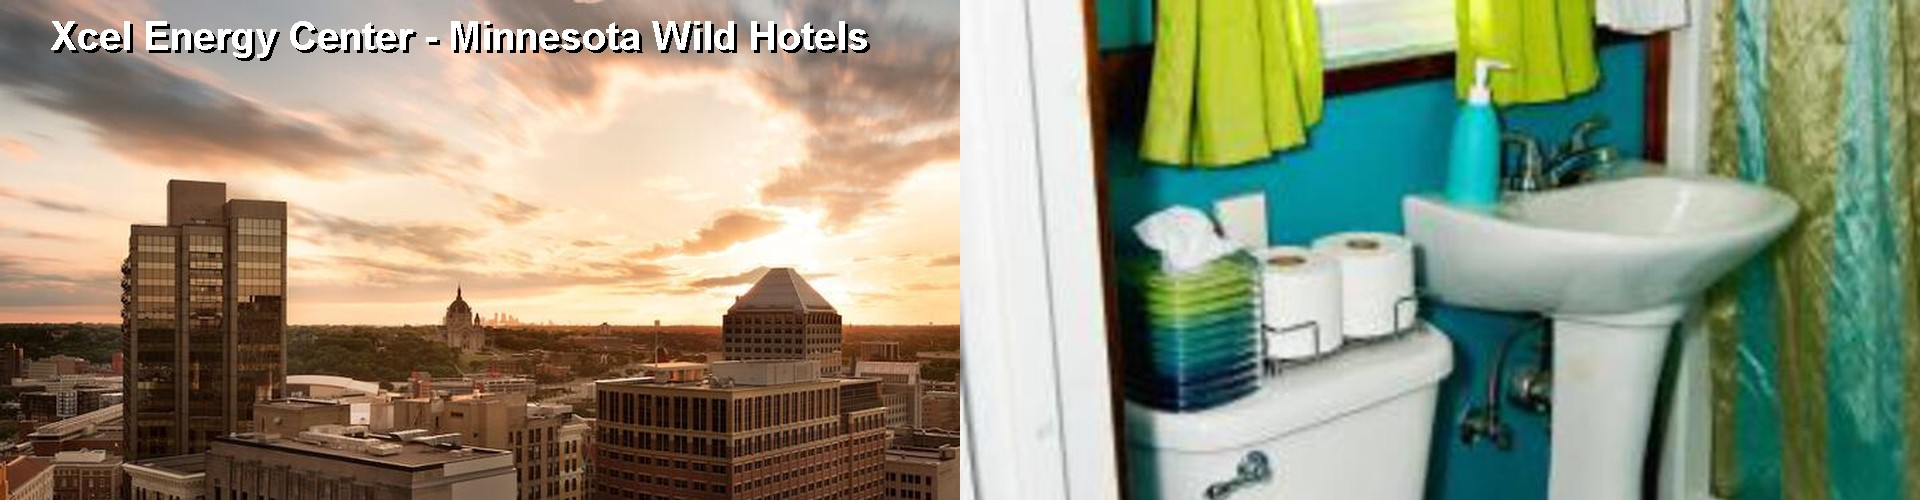 5 Best Hotels near Xcel Energy Center - Minnesota Wild